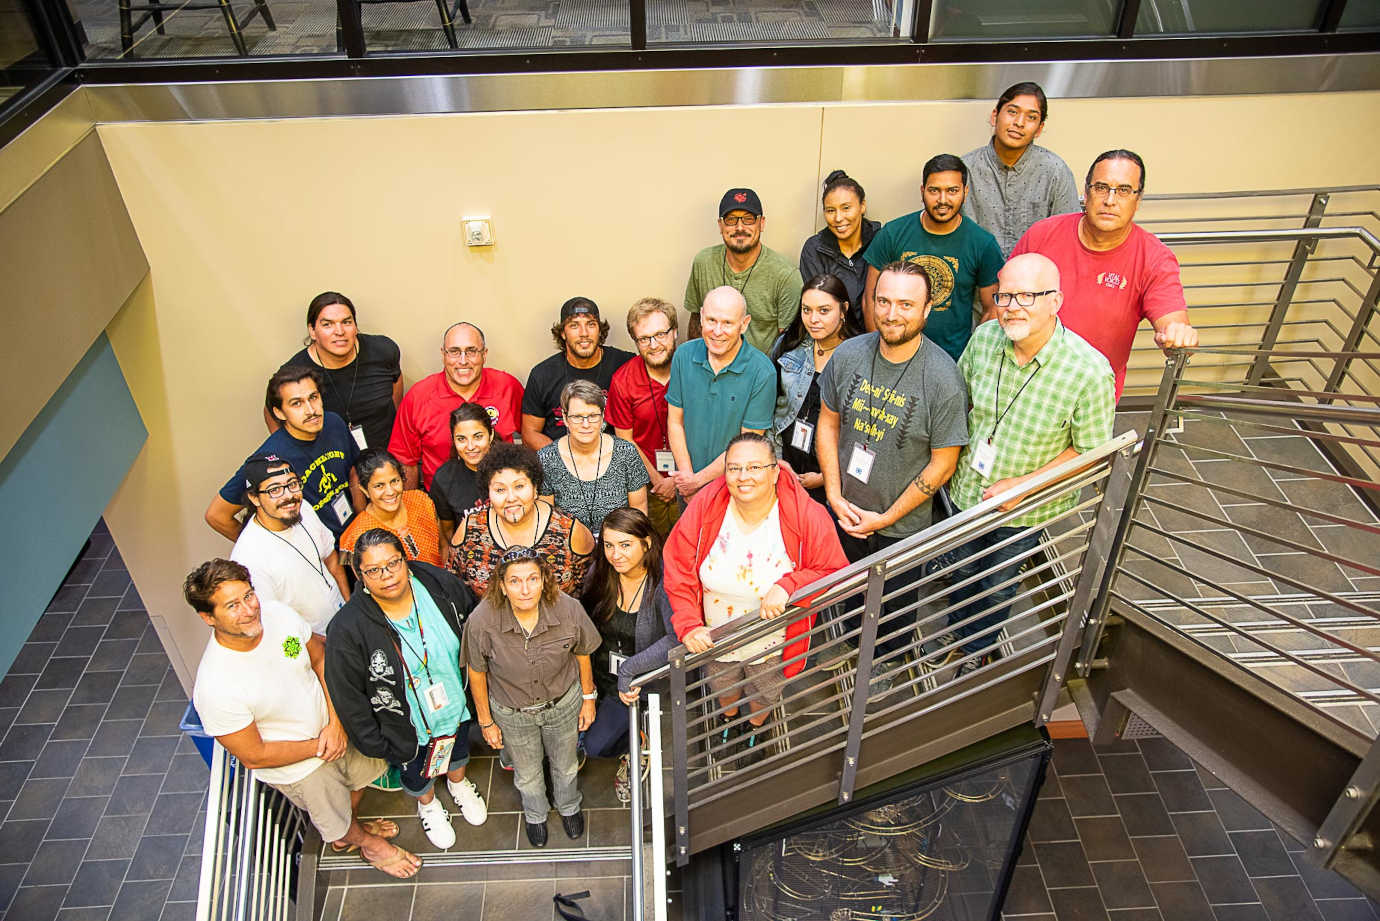 Participants and staff of the Module 2 Workshop for National Breath of Life Archival Institute held at Miami University, Oxford, Ohio. 2019. Photo Credit: Karen L. Baldwin